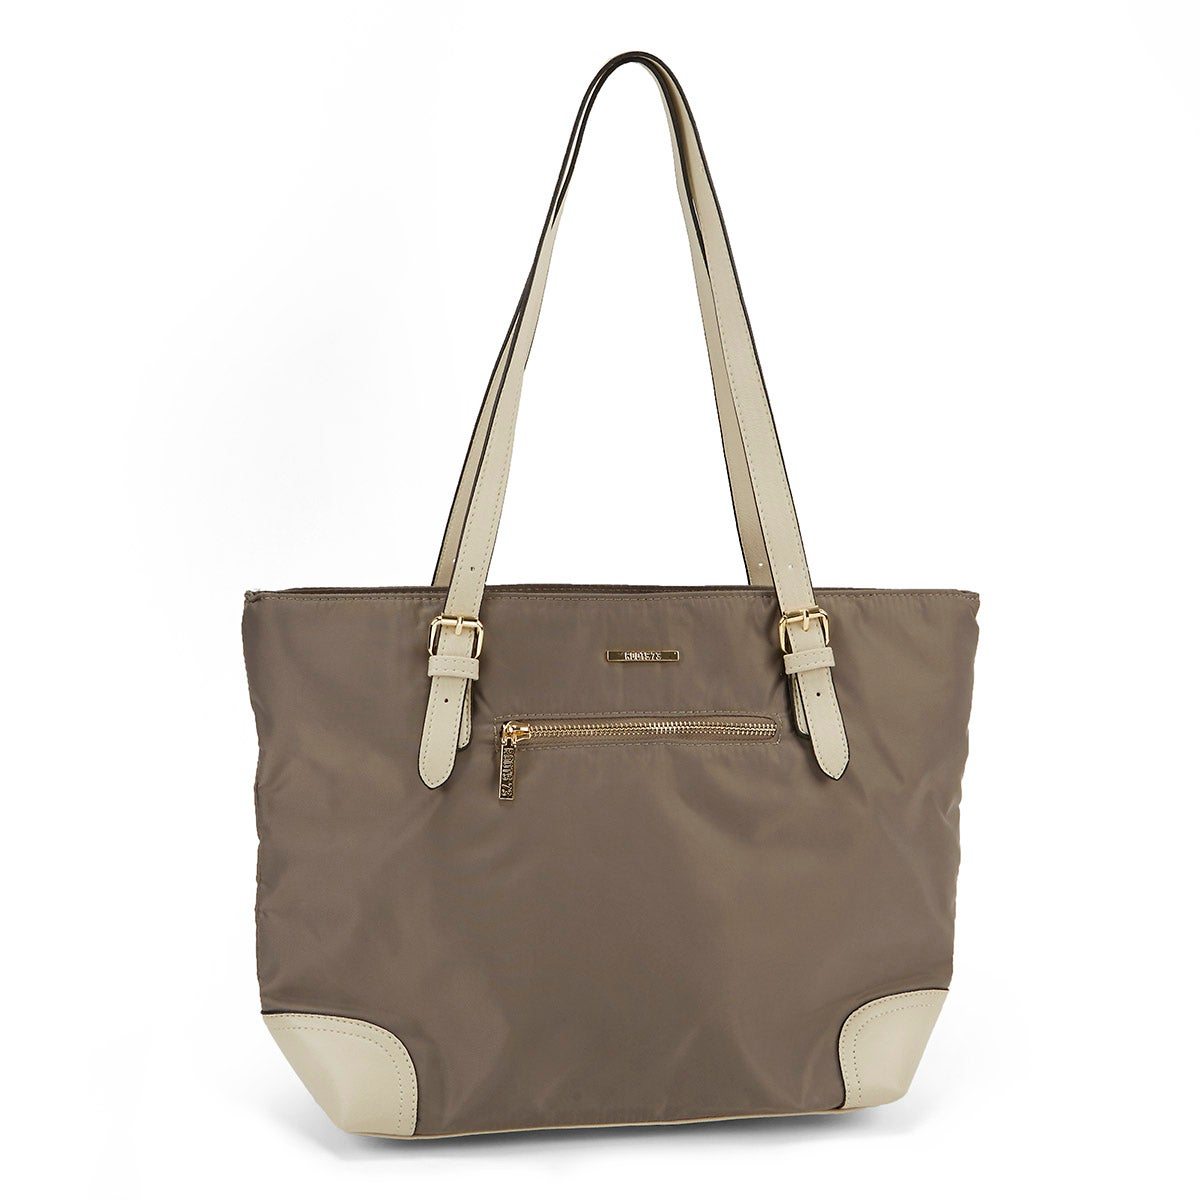 Lds stone/ivory large satchel